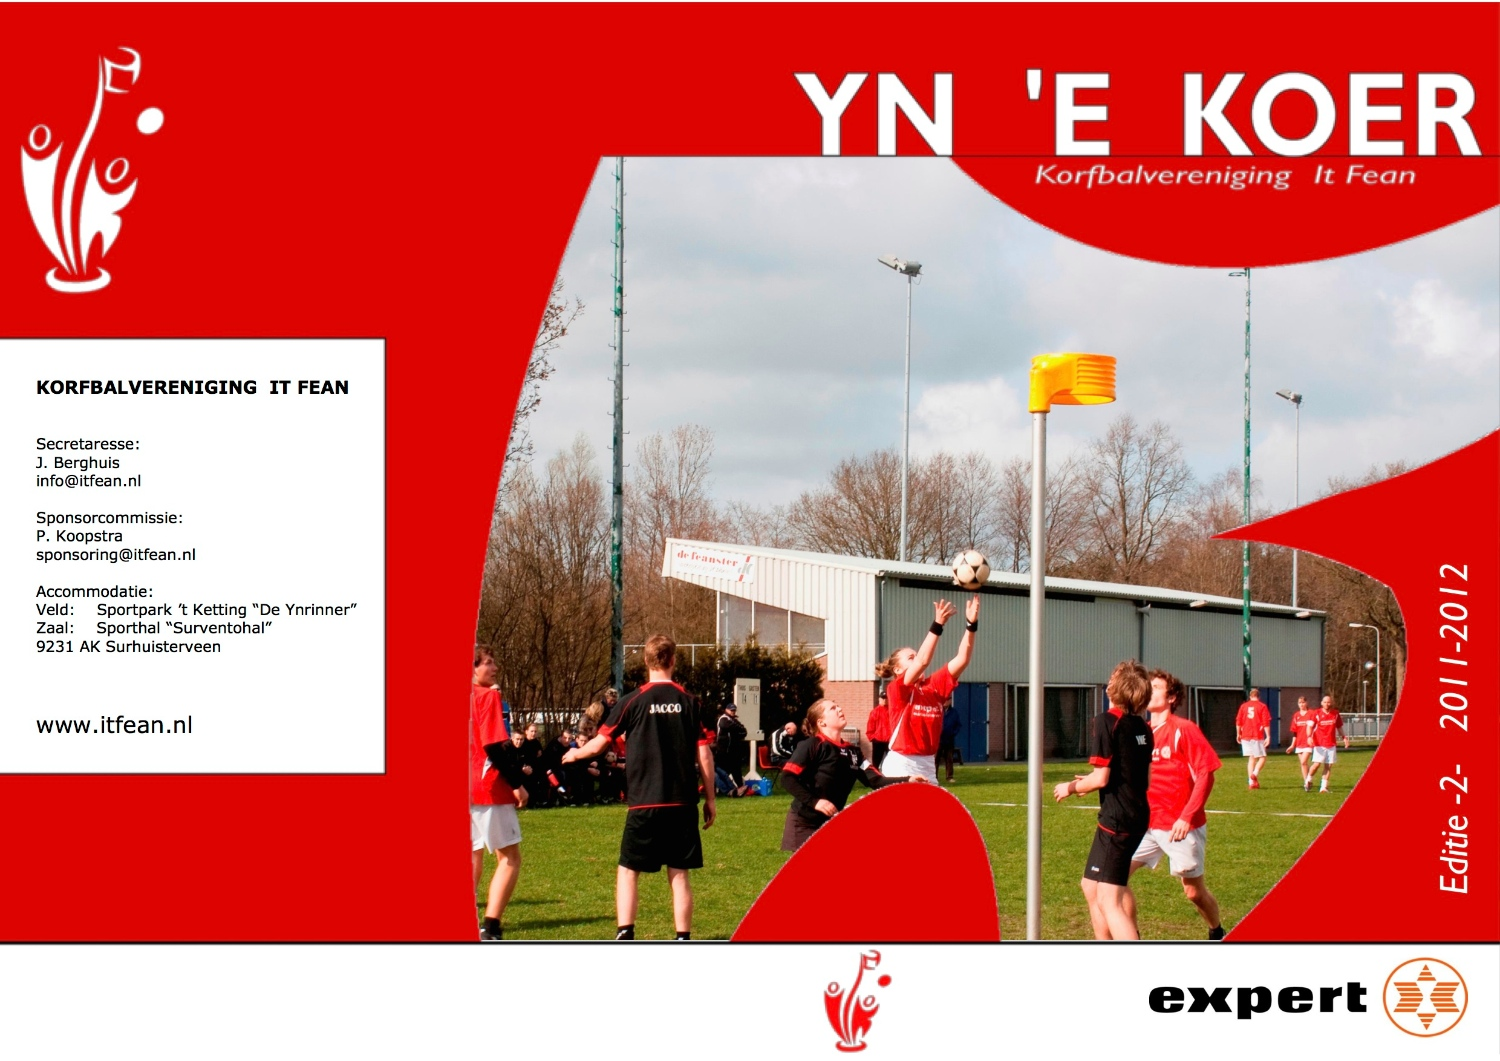 clubblad yn e koer korfbalvereniging it fean